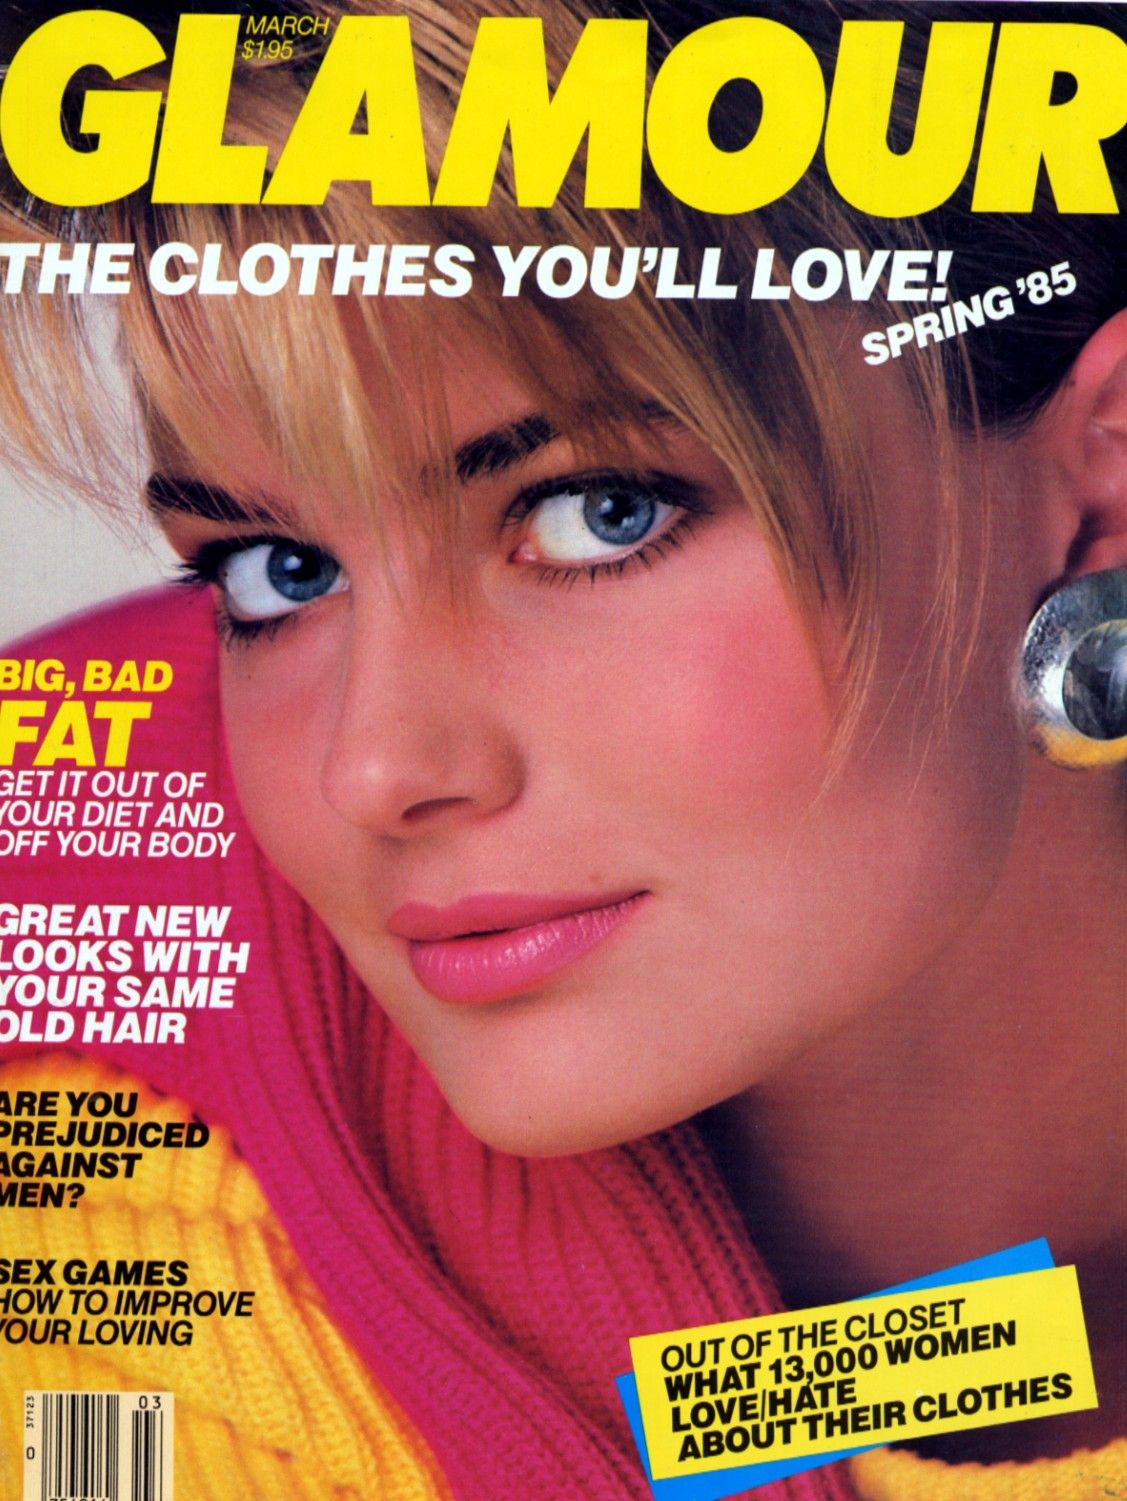 Editorial Glamour Makeup Professional Makeup Artist: Paulina Porizkova - Glamour March 1985